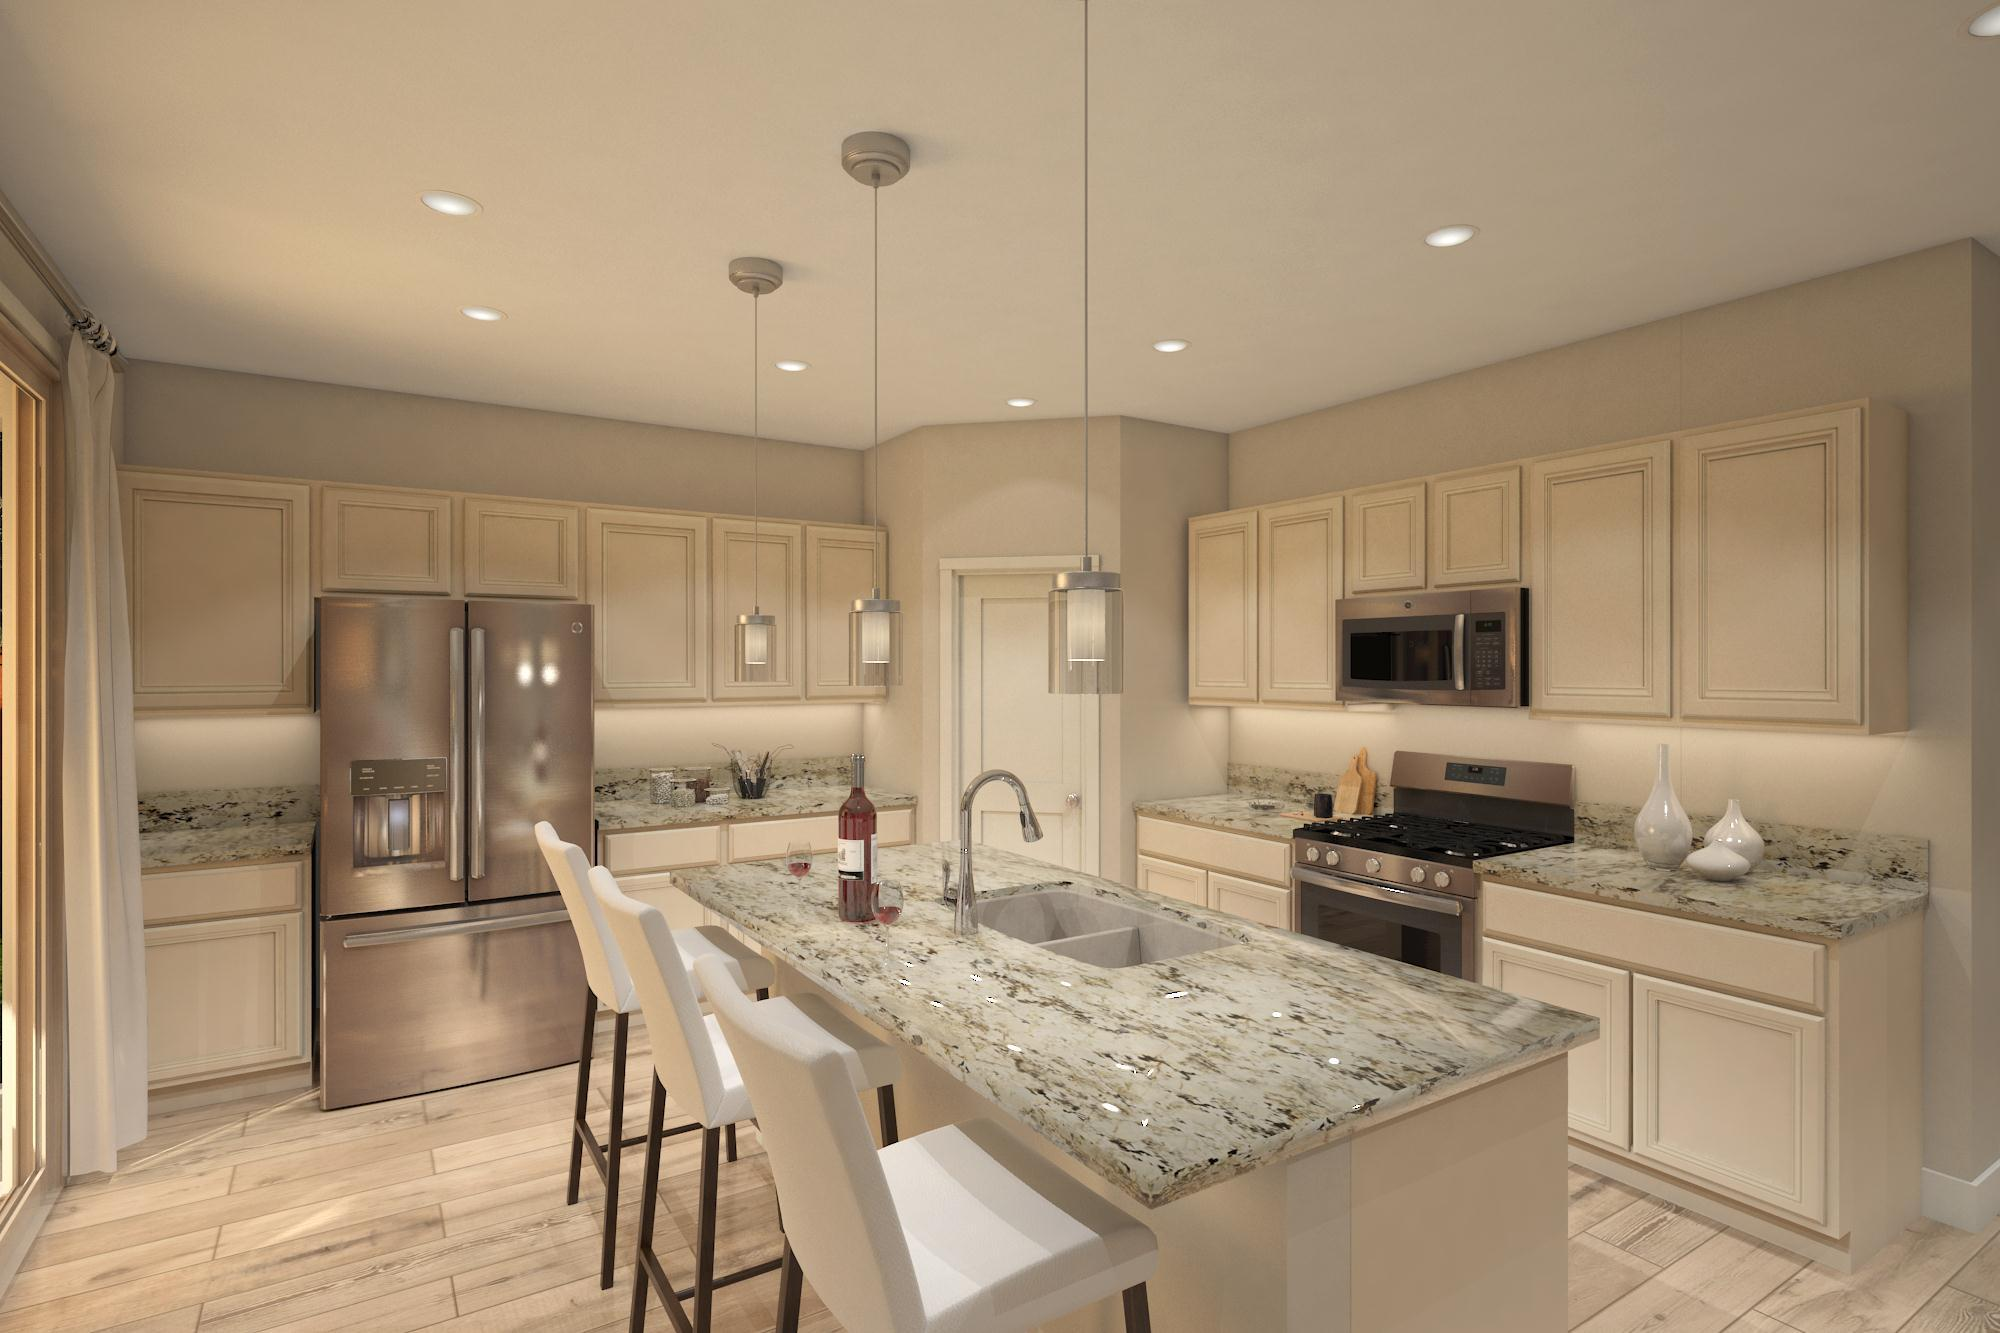 Kitchen featured in the Plan 7- 3035 By Jenuane Communities in Reno, NV